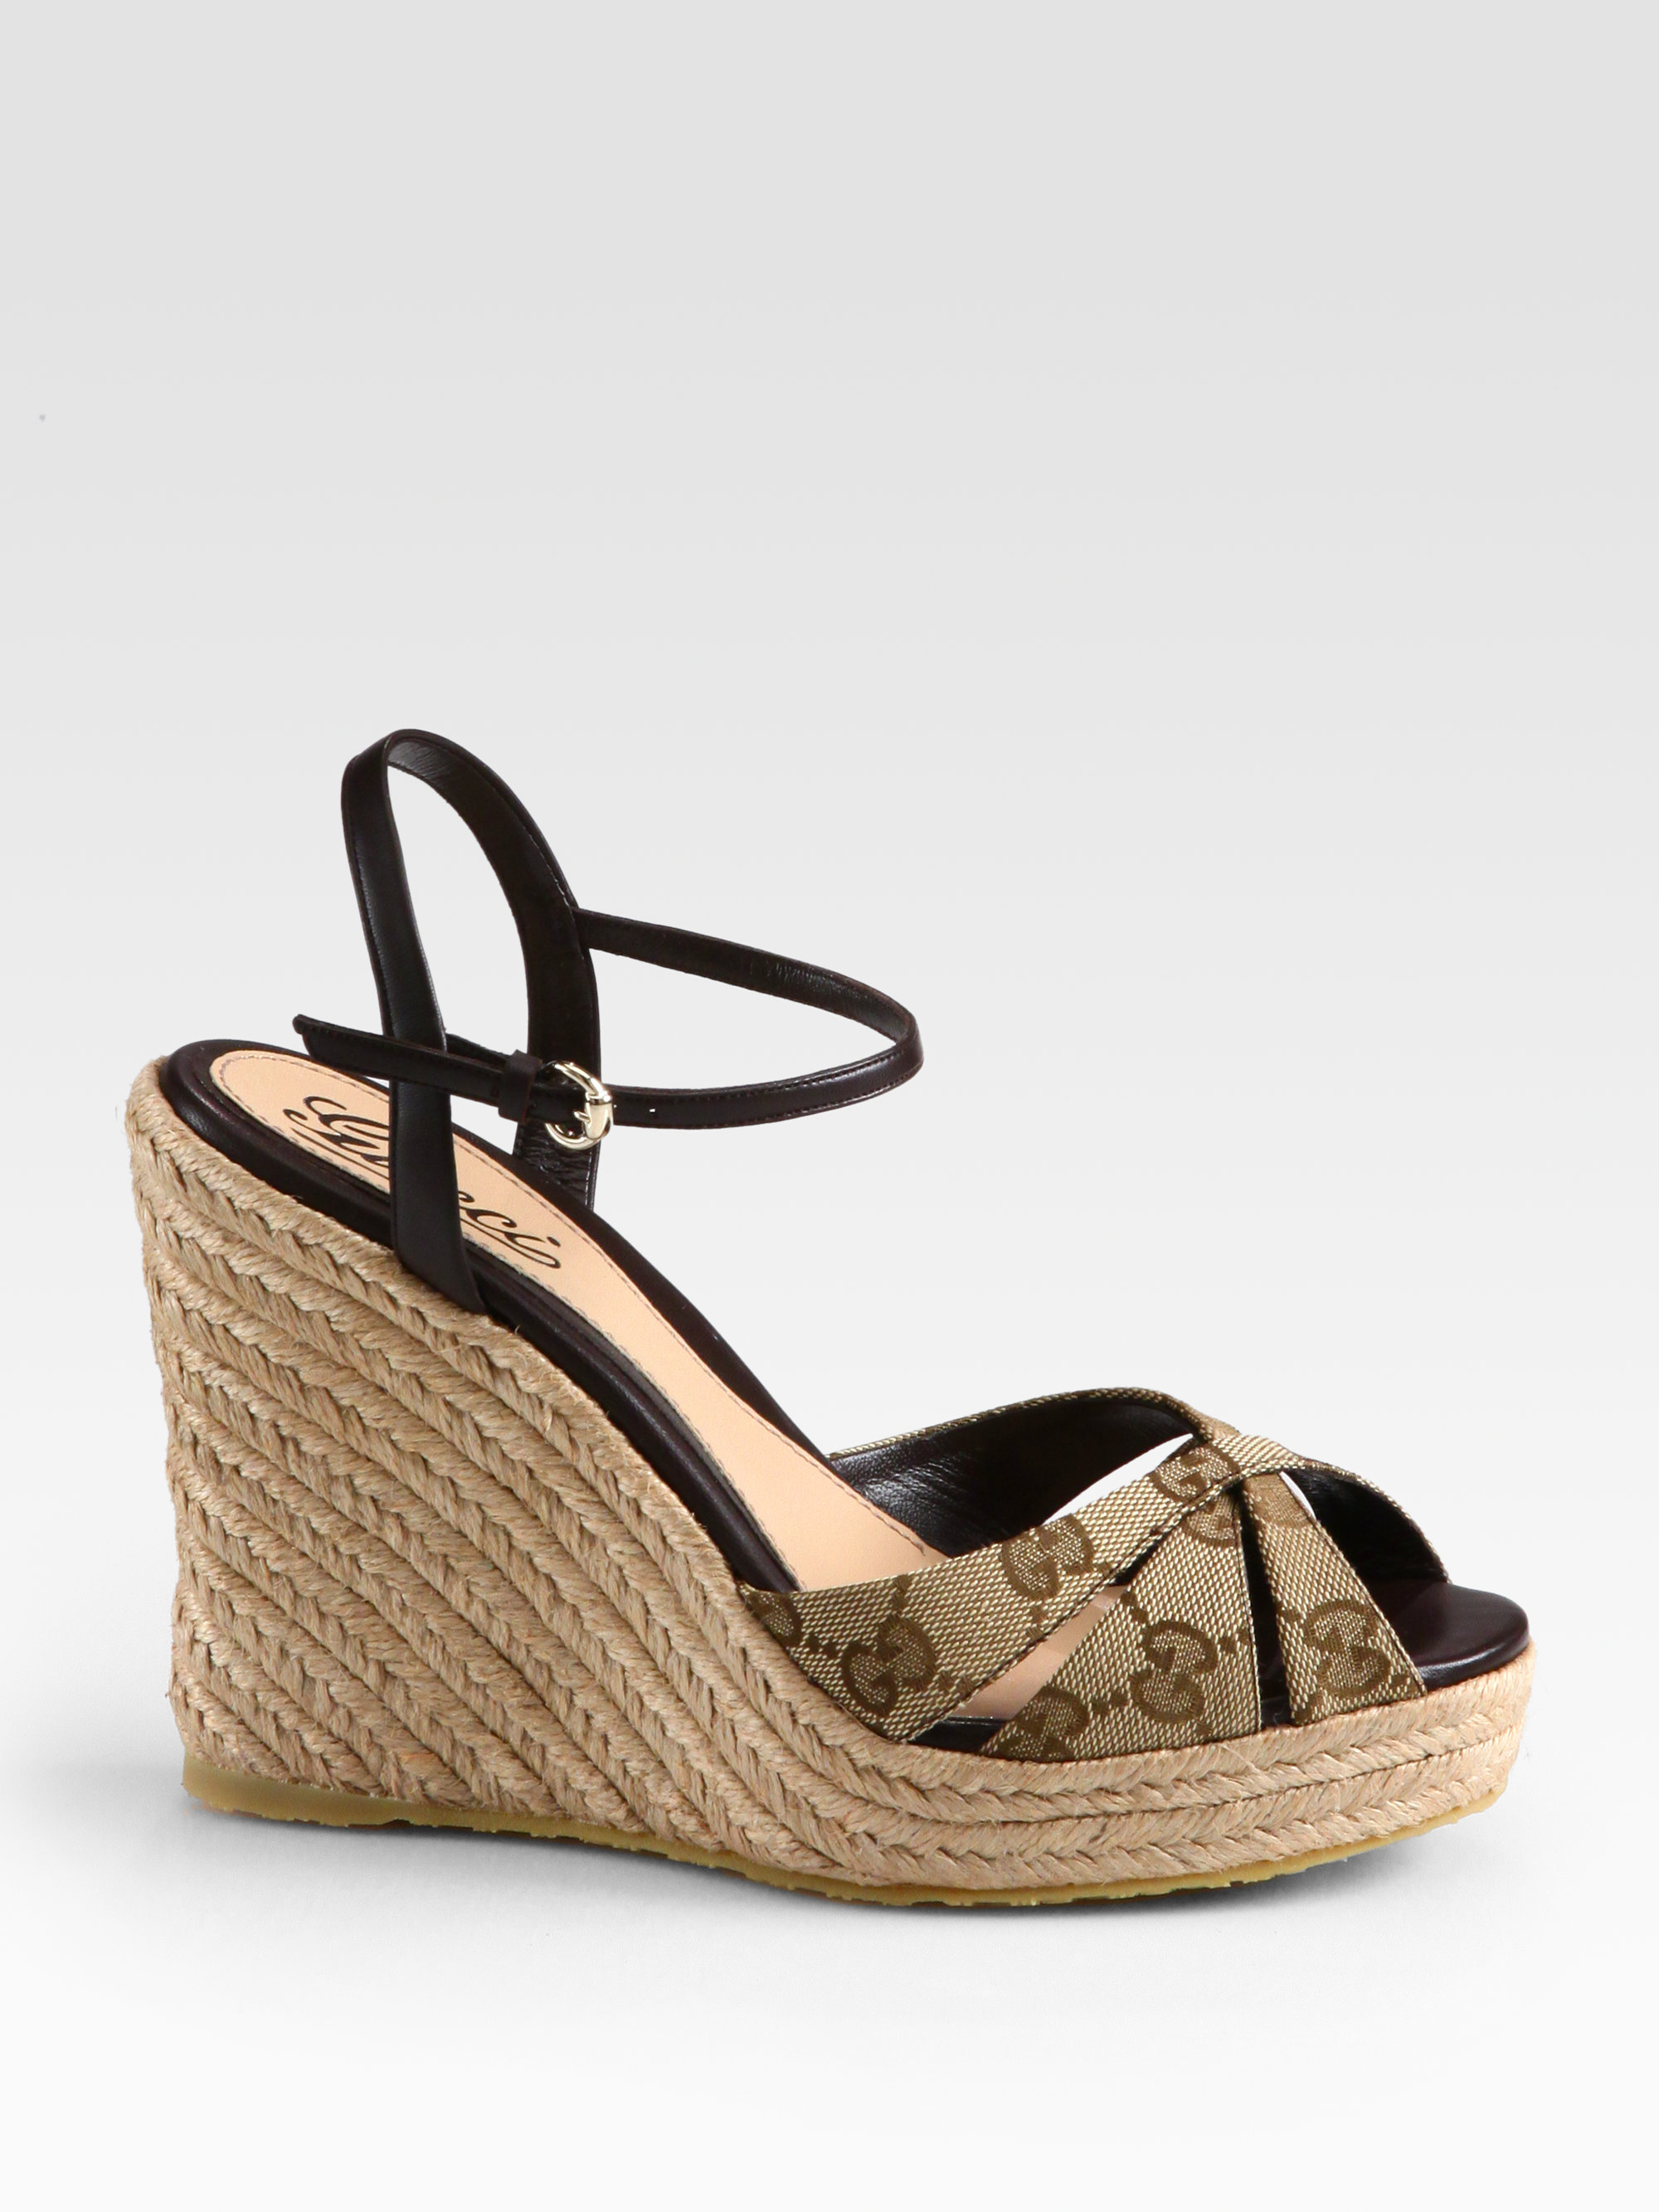 Gucci Penelope Gg Canvas Espadrille Wedges In Black Lyst